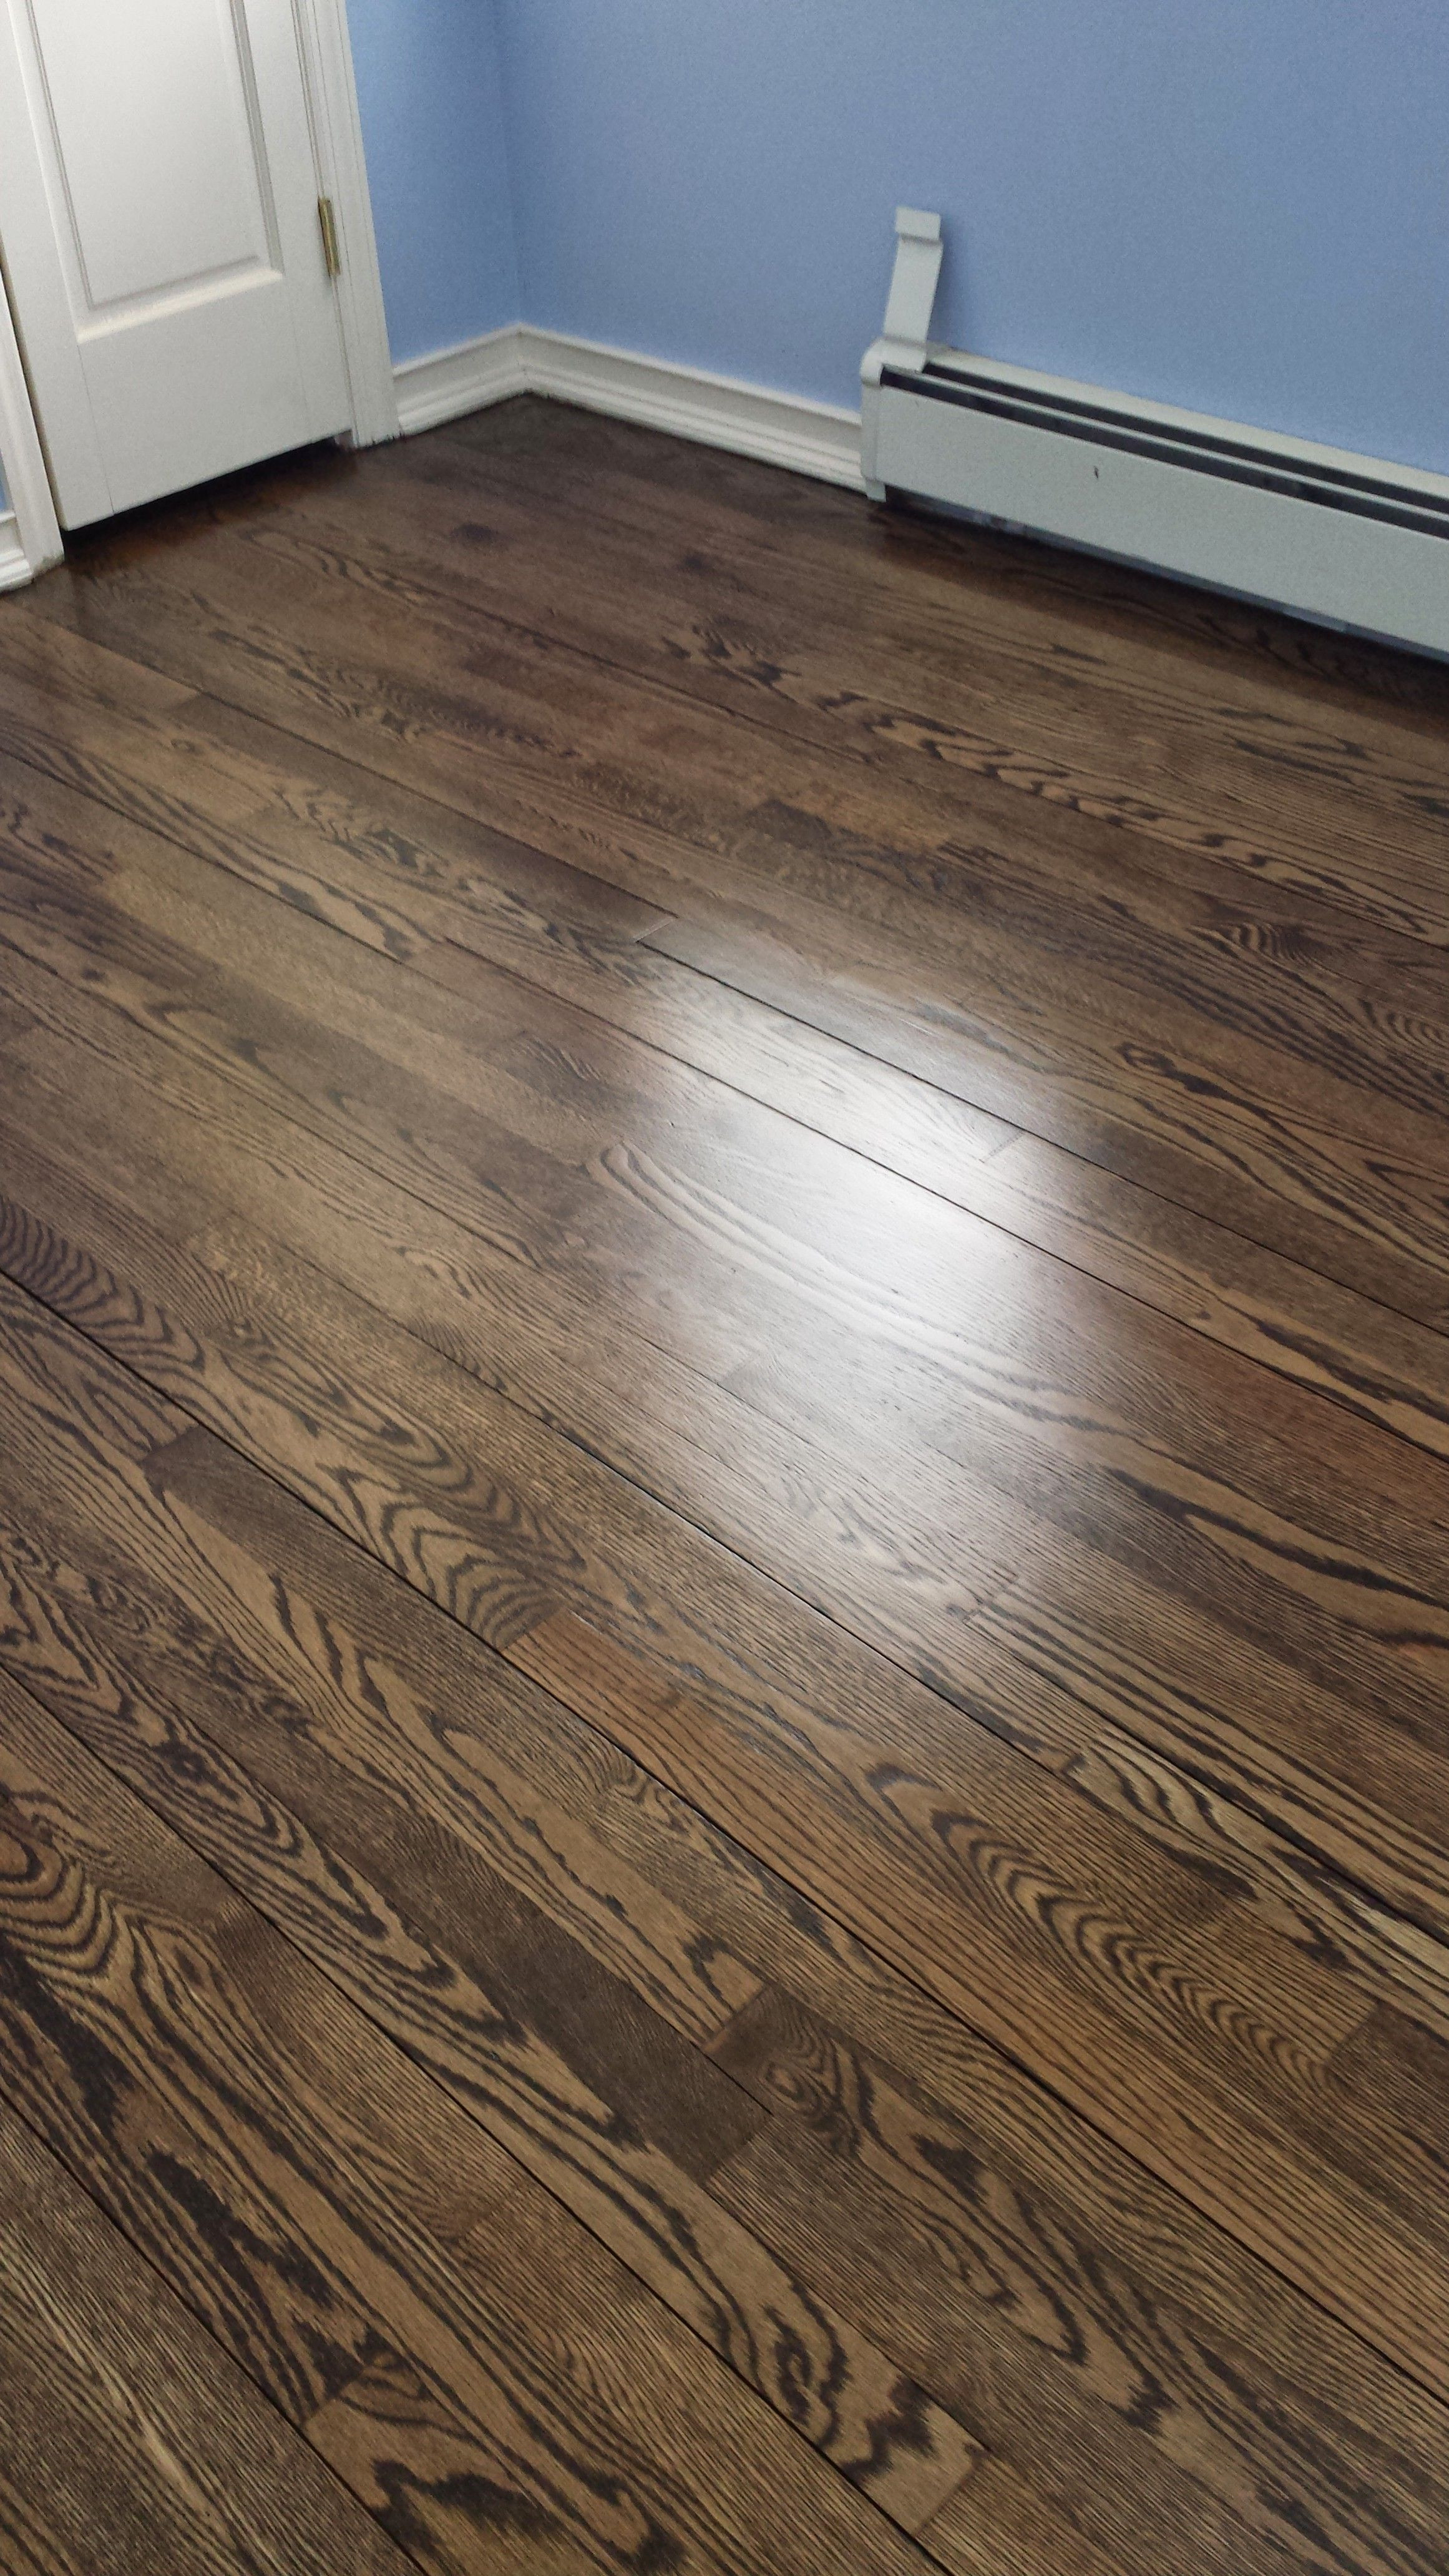 refinish hardwood floors or paint first of painted hardwood floors great methods to use for refinishing within painted hardwood floors great methods to use for refinishing hardwood floors